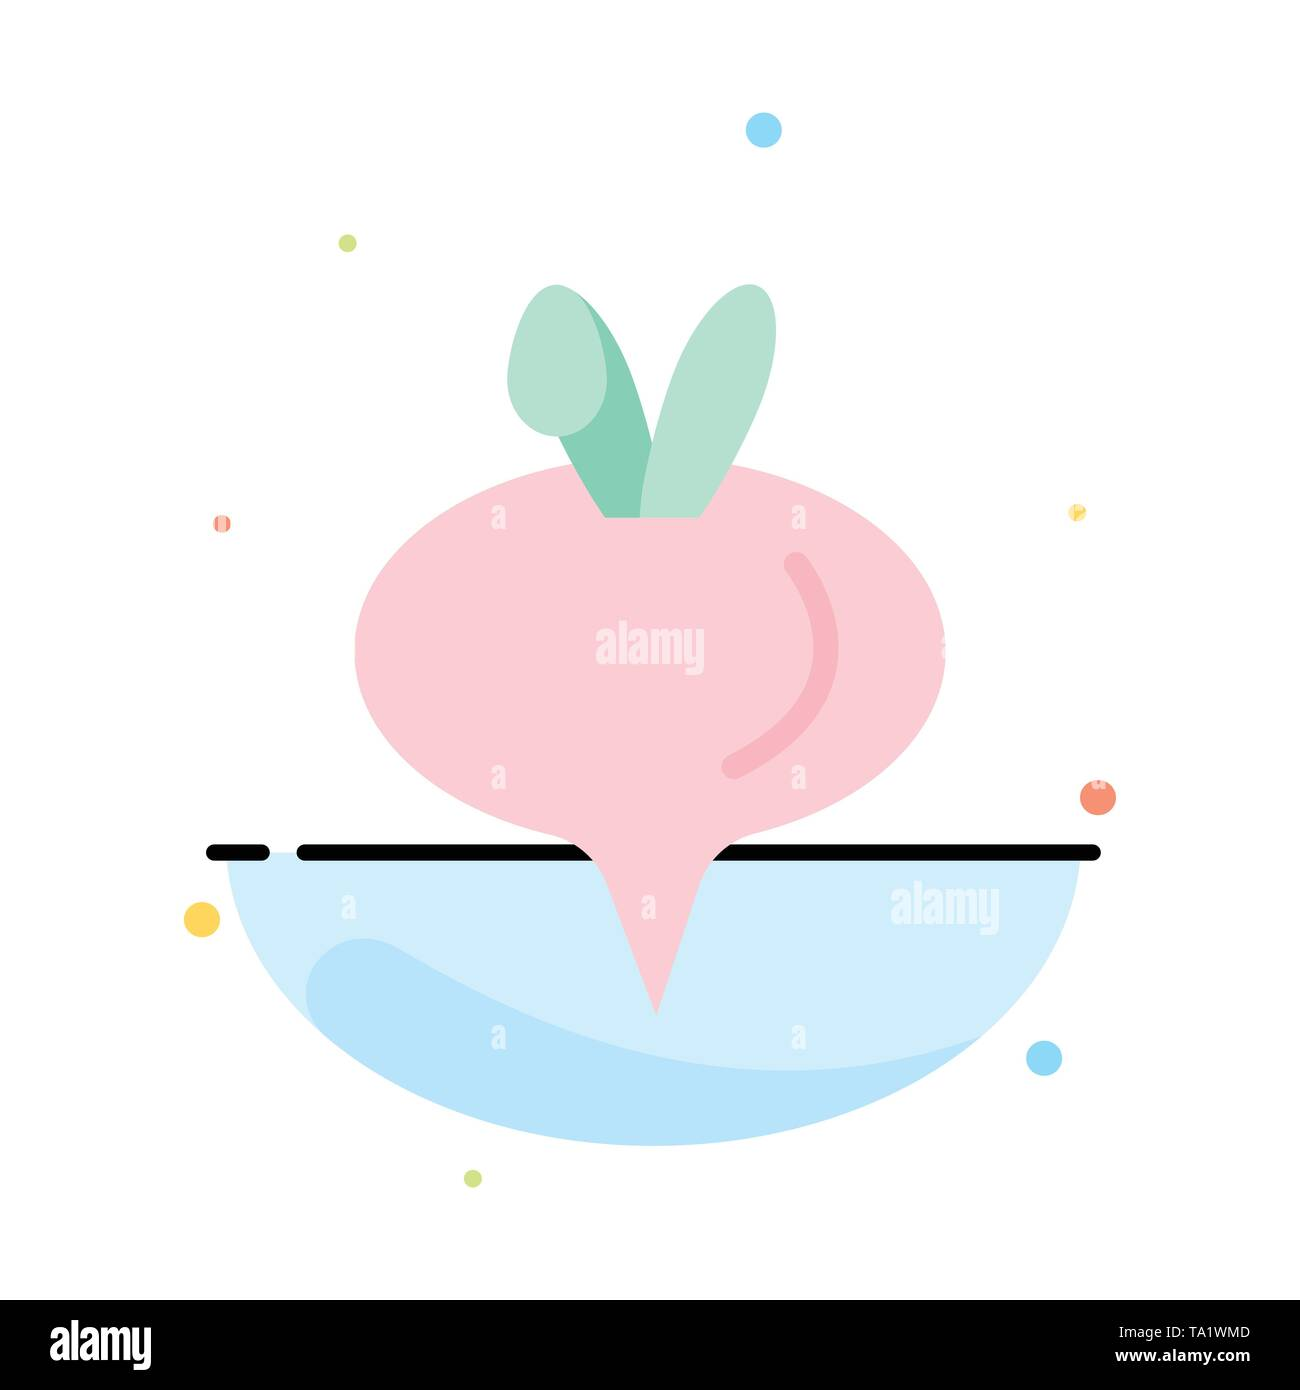 Food, Turnip, Vegetable Abstract Flat Color Icon Template - Stock Image